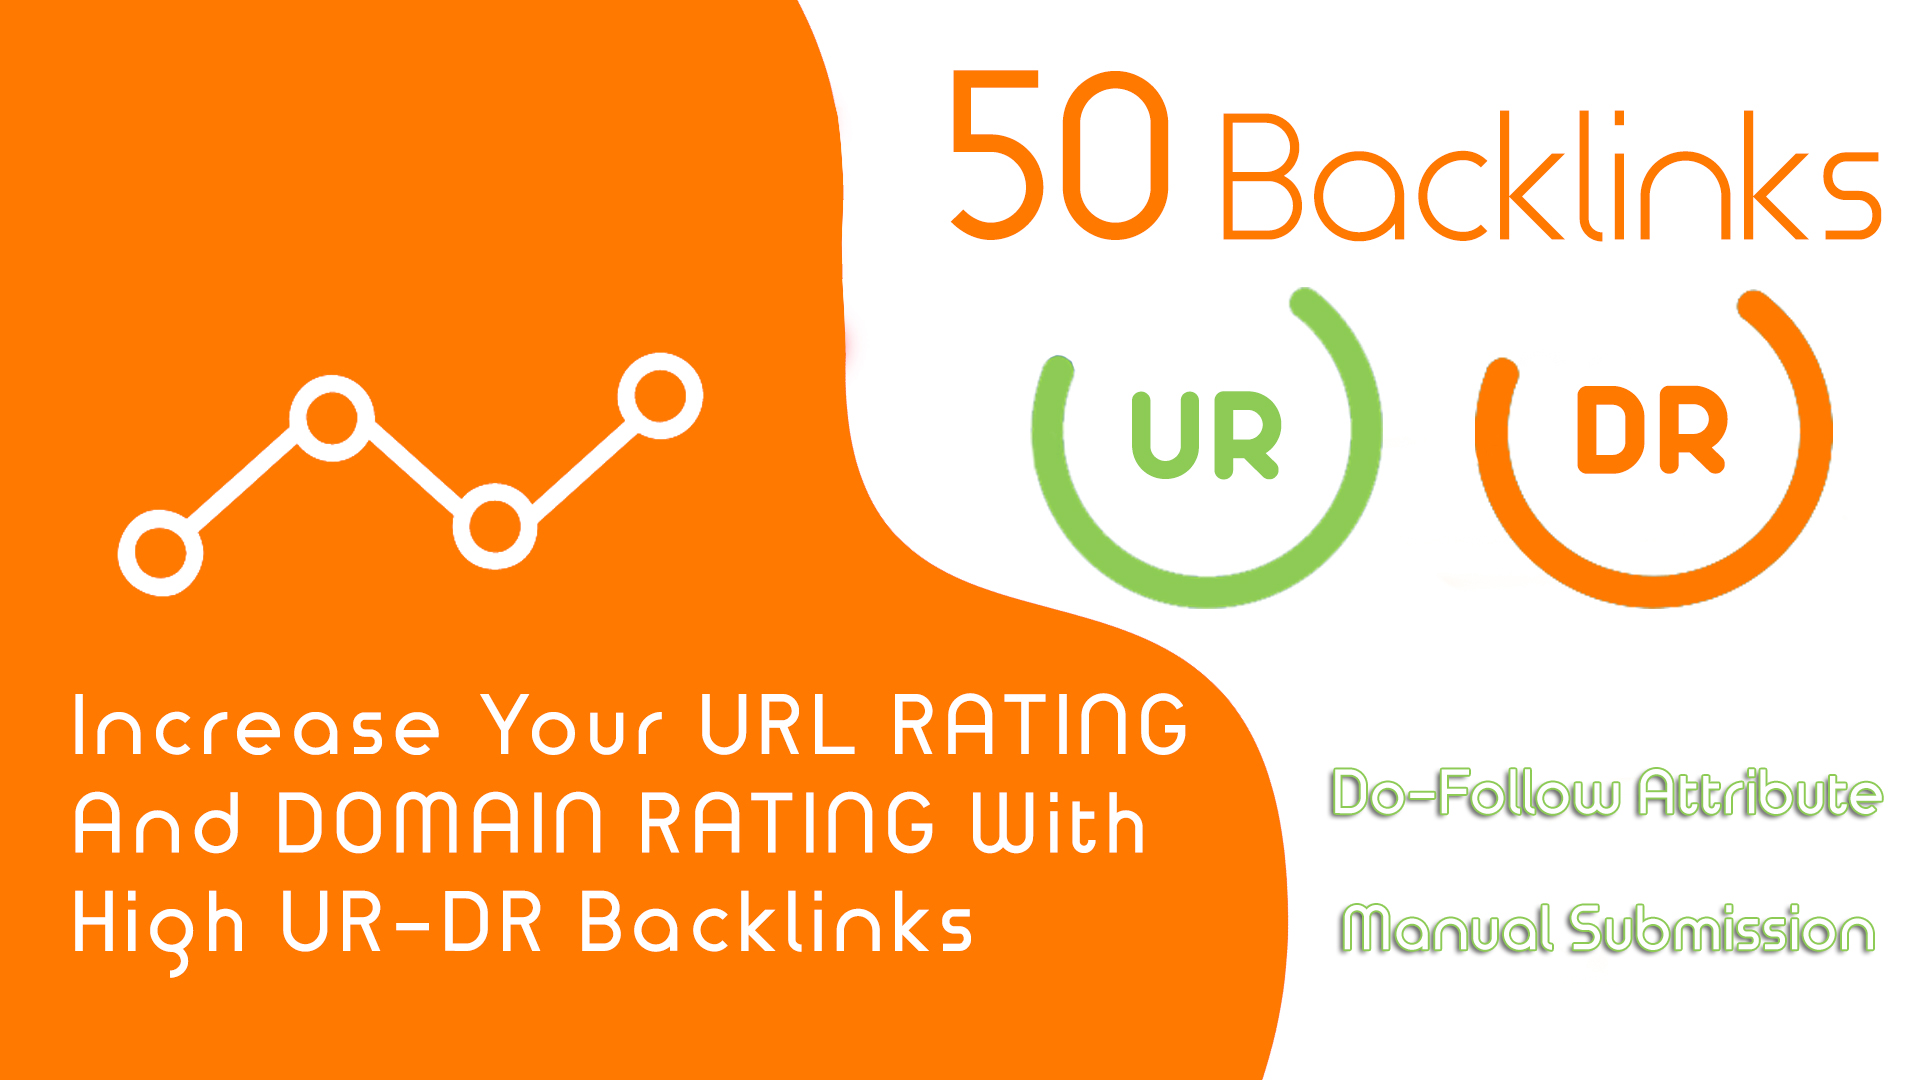 I Will Create 50 High Domain Rating DR And High URL Rating UR Backlinks